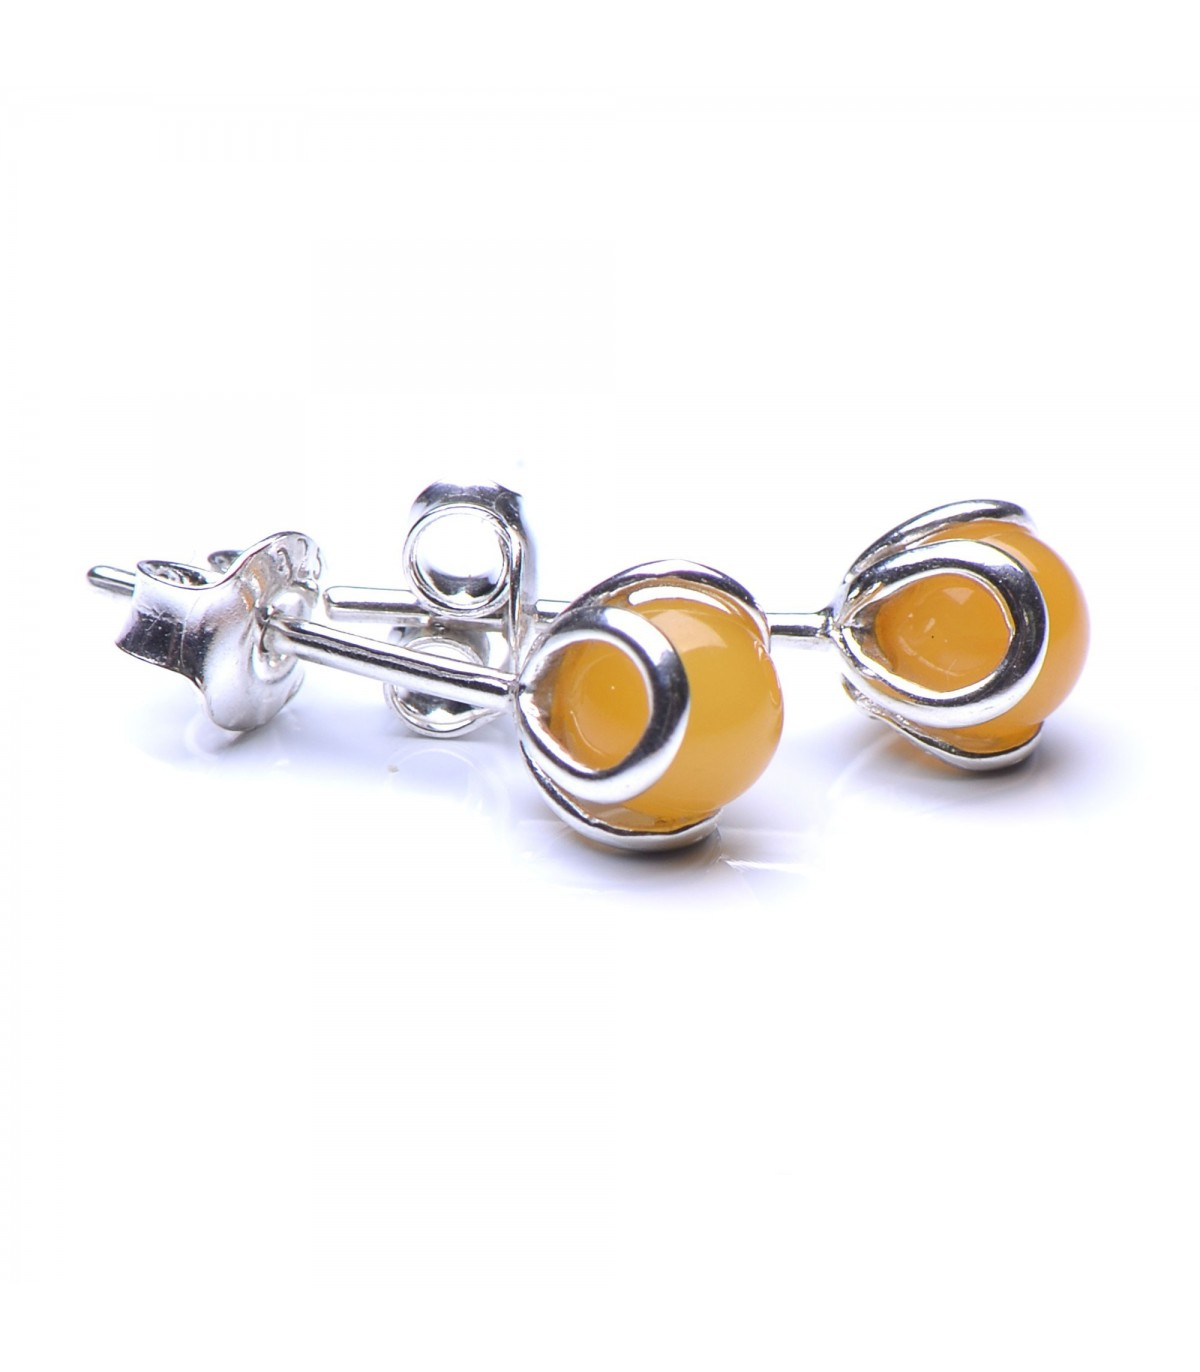 959ba91e6 Butterscotch Baltic Amber & Sterling Silver Stud Earings - Genuine ...